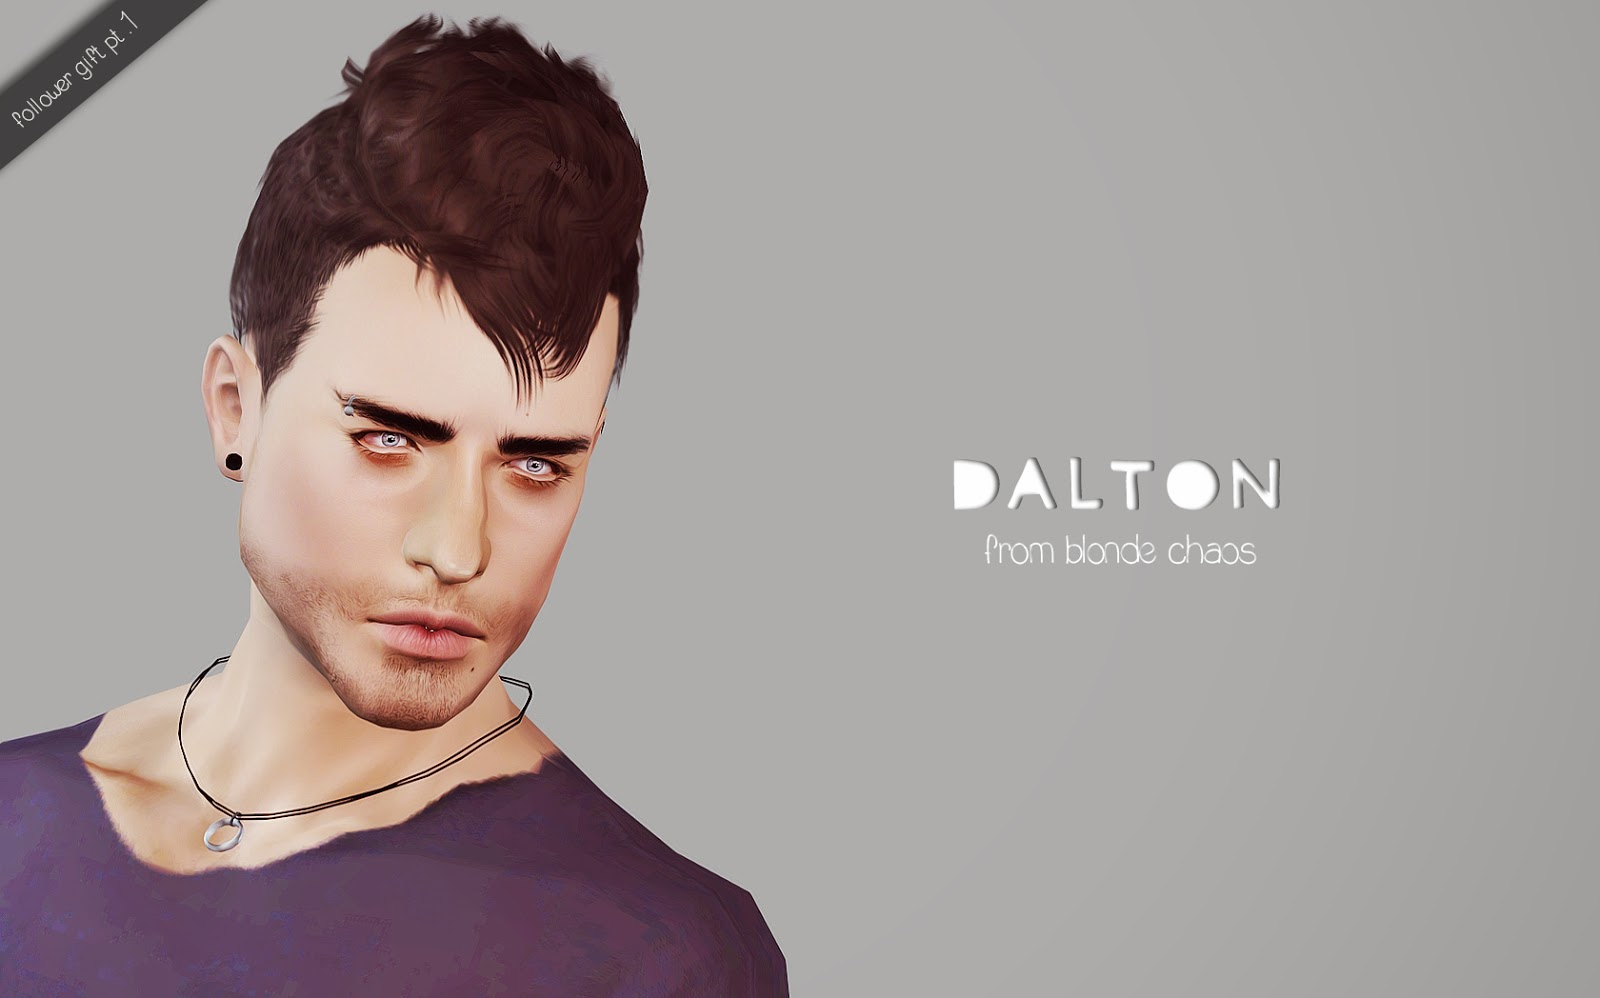 Dalton by Blondechaos